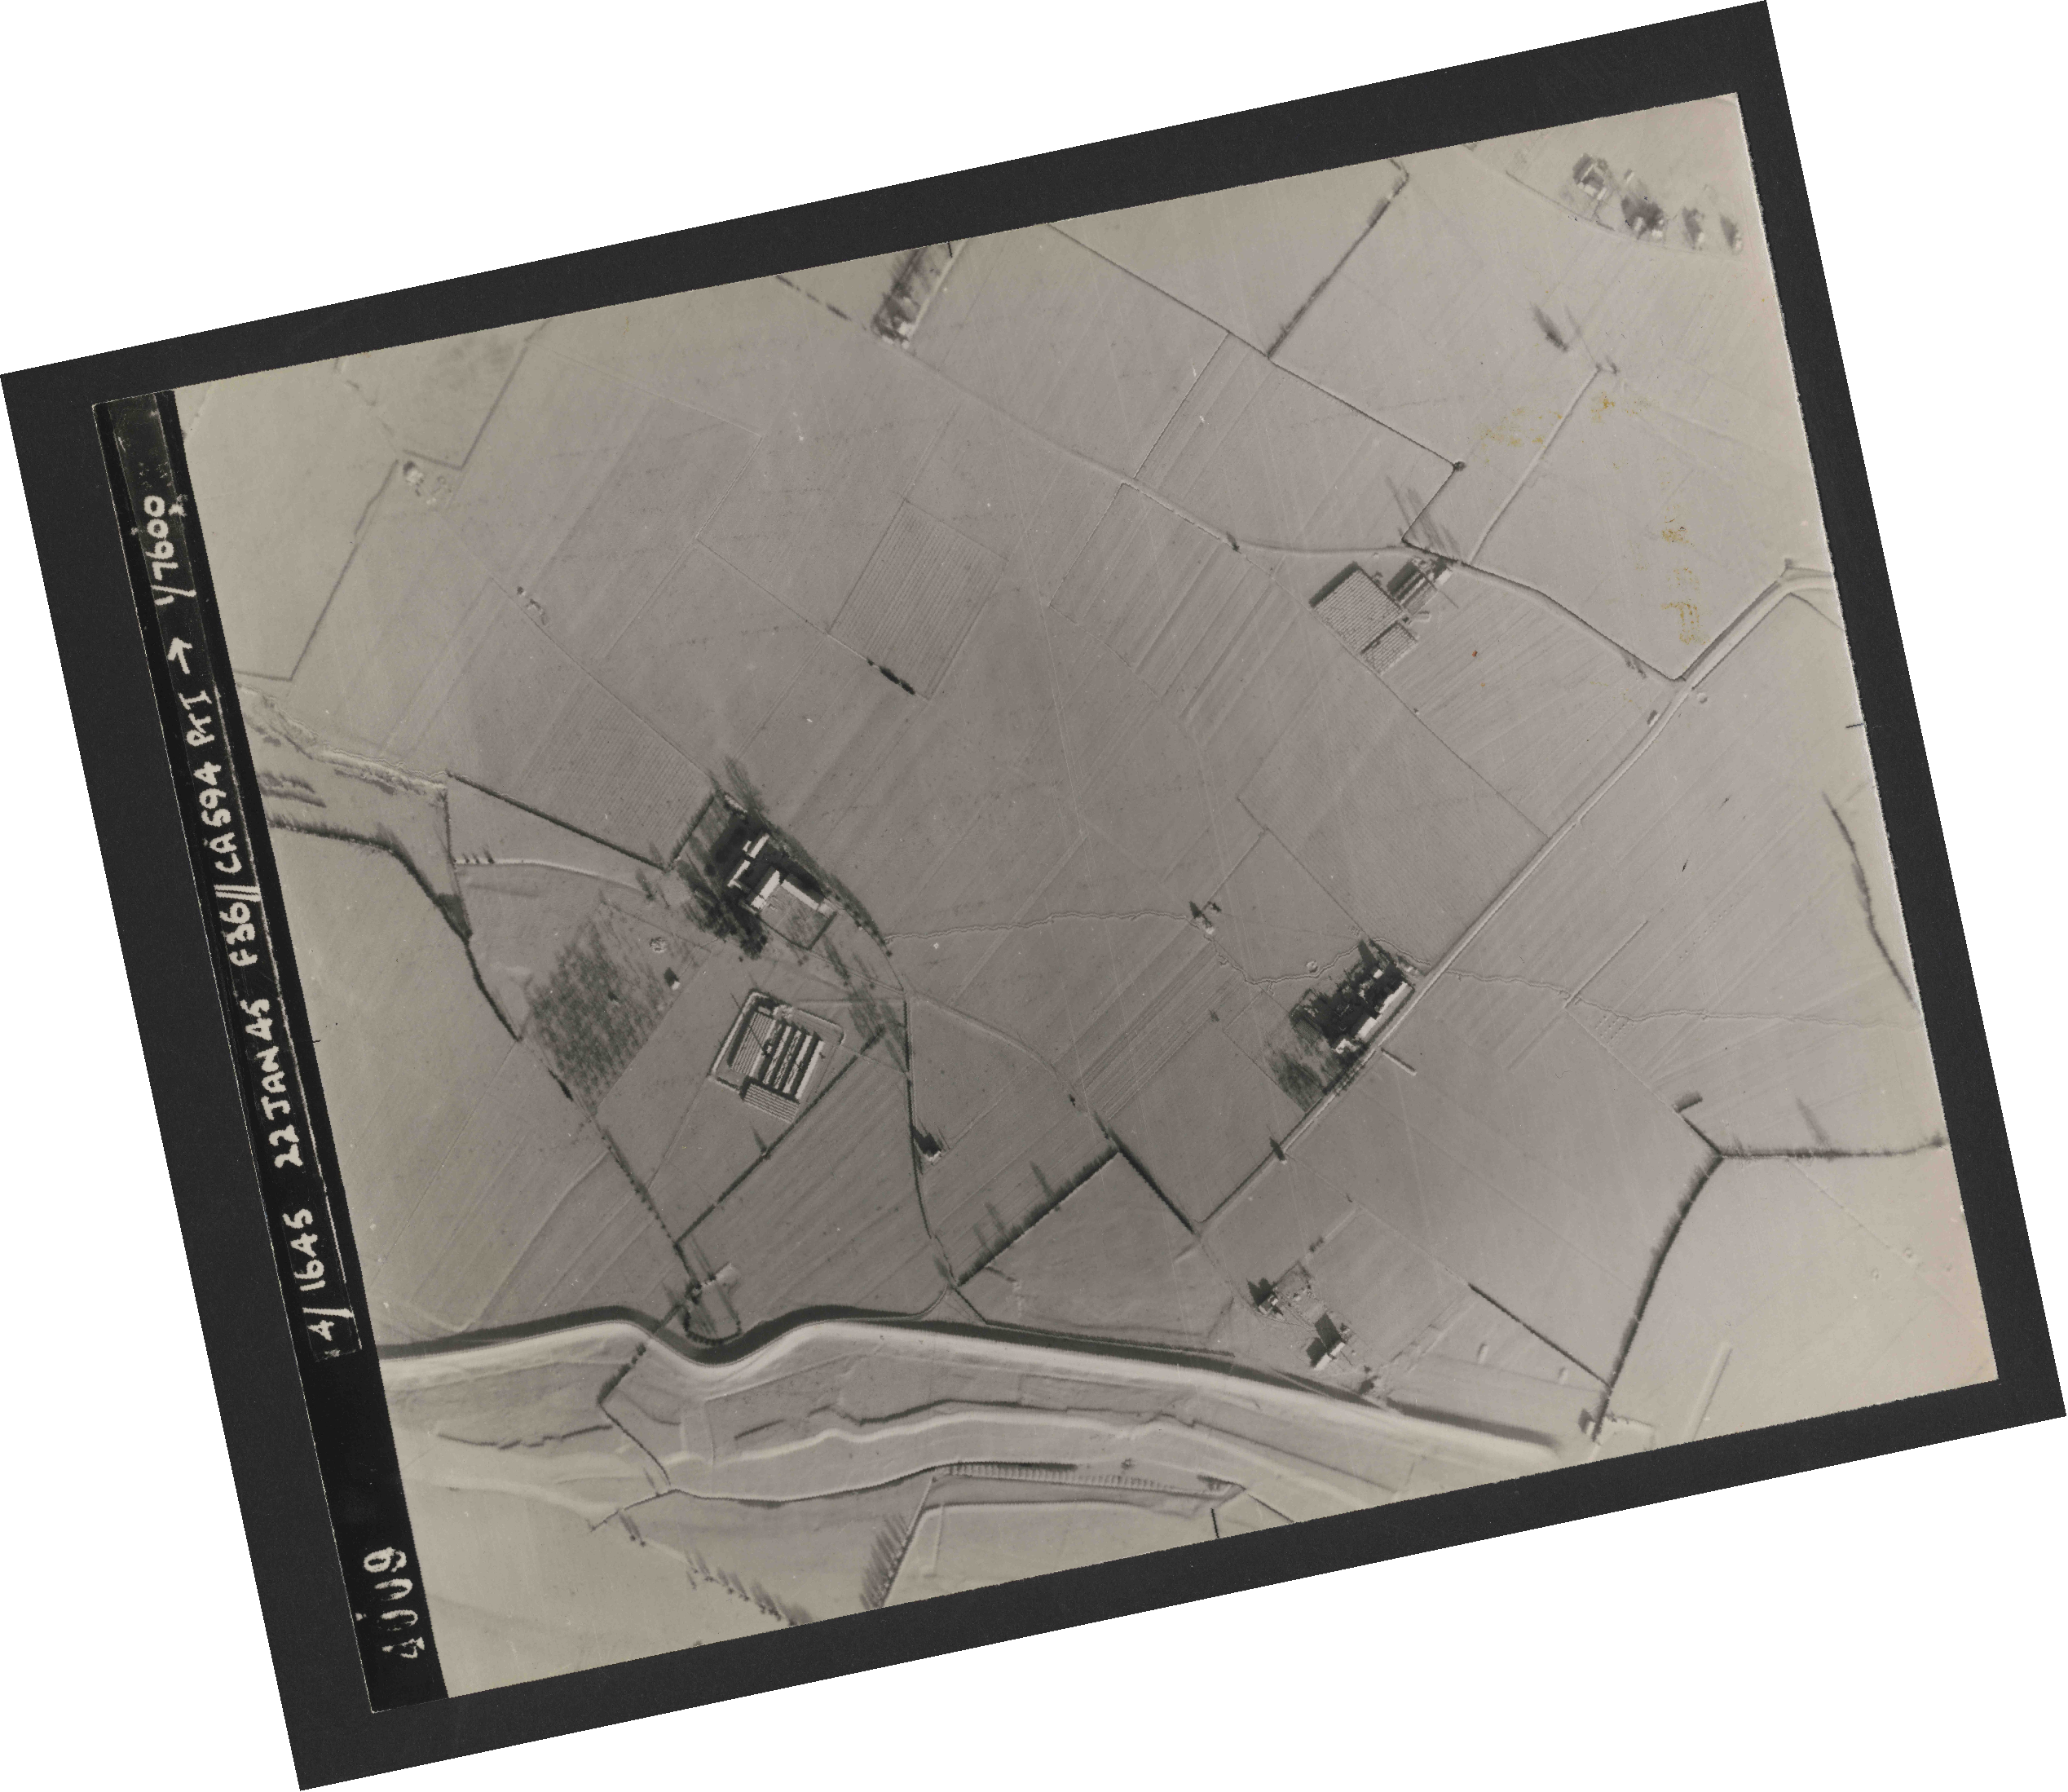 Collection RAF aerial photos 1940-1945 - flight 319, run 02, photo 4009